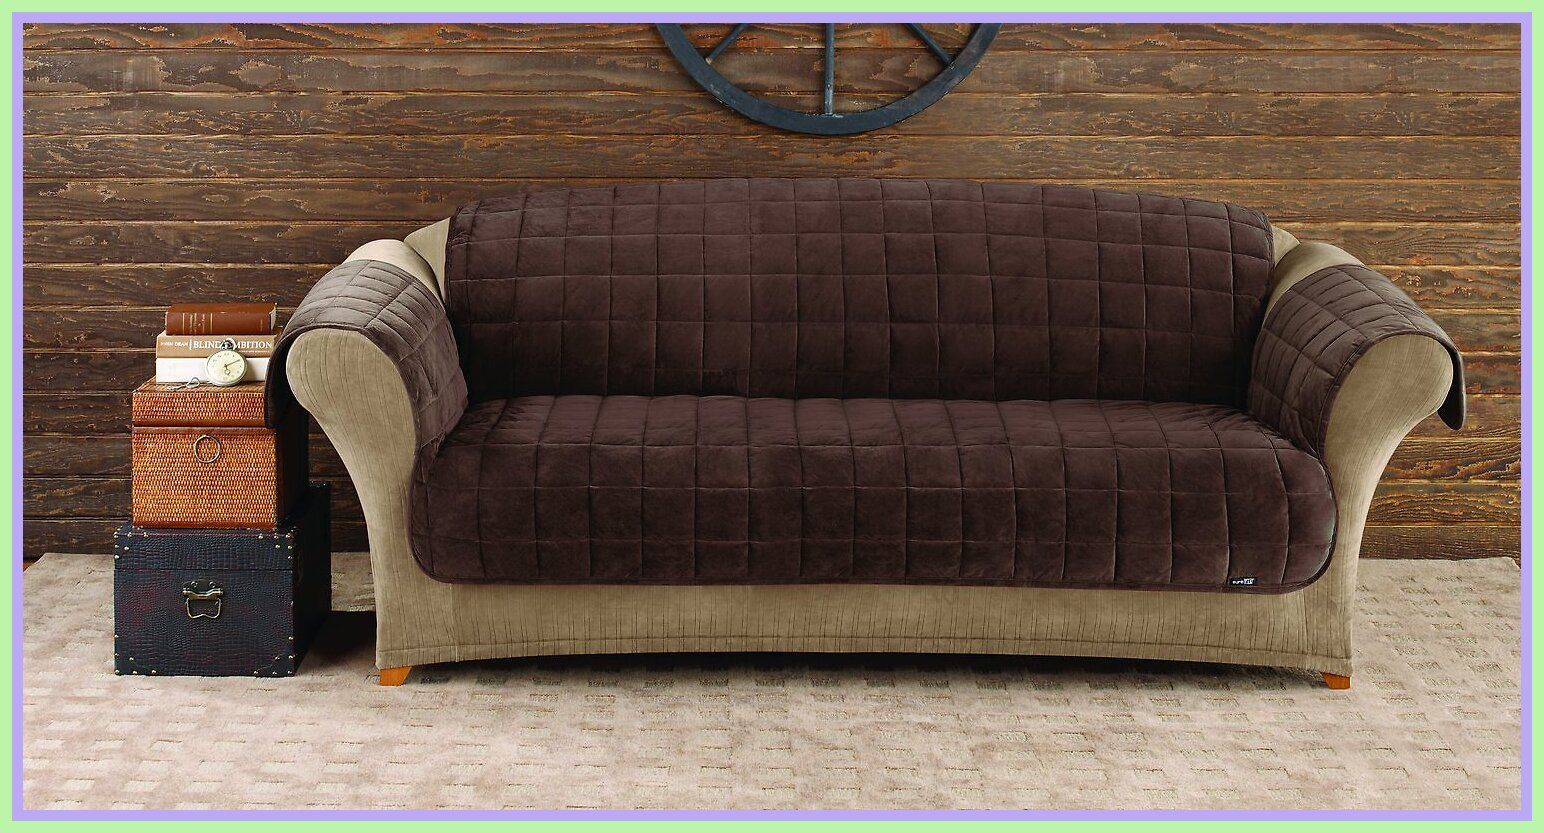 120 Reference Of Sure Fit Deluxe Sofa Cover Gray In 2020 Cushions On Sofa Quilted Sofa Sofa Furniture